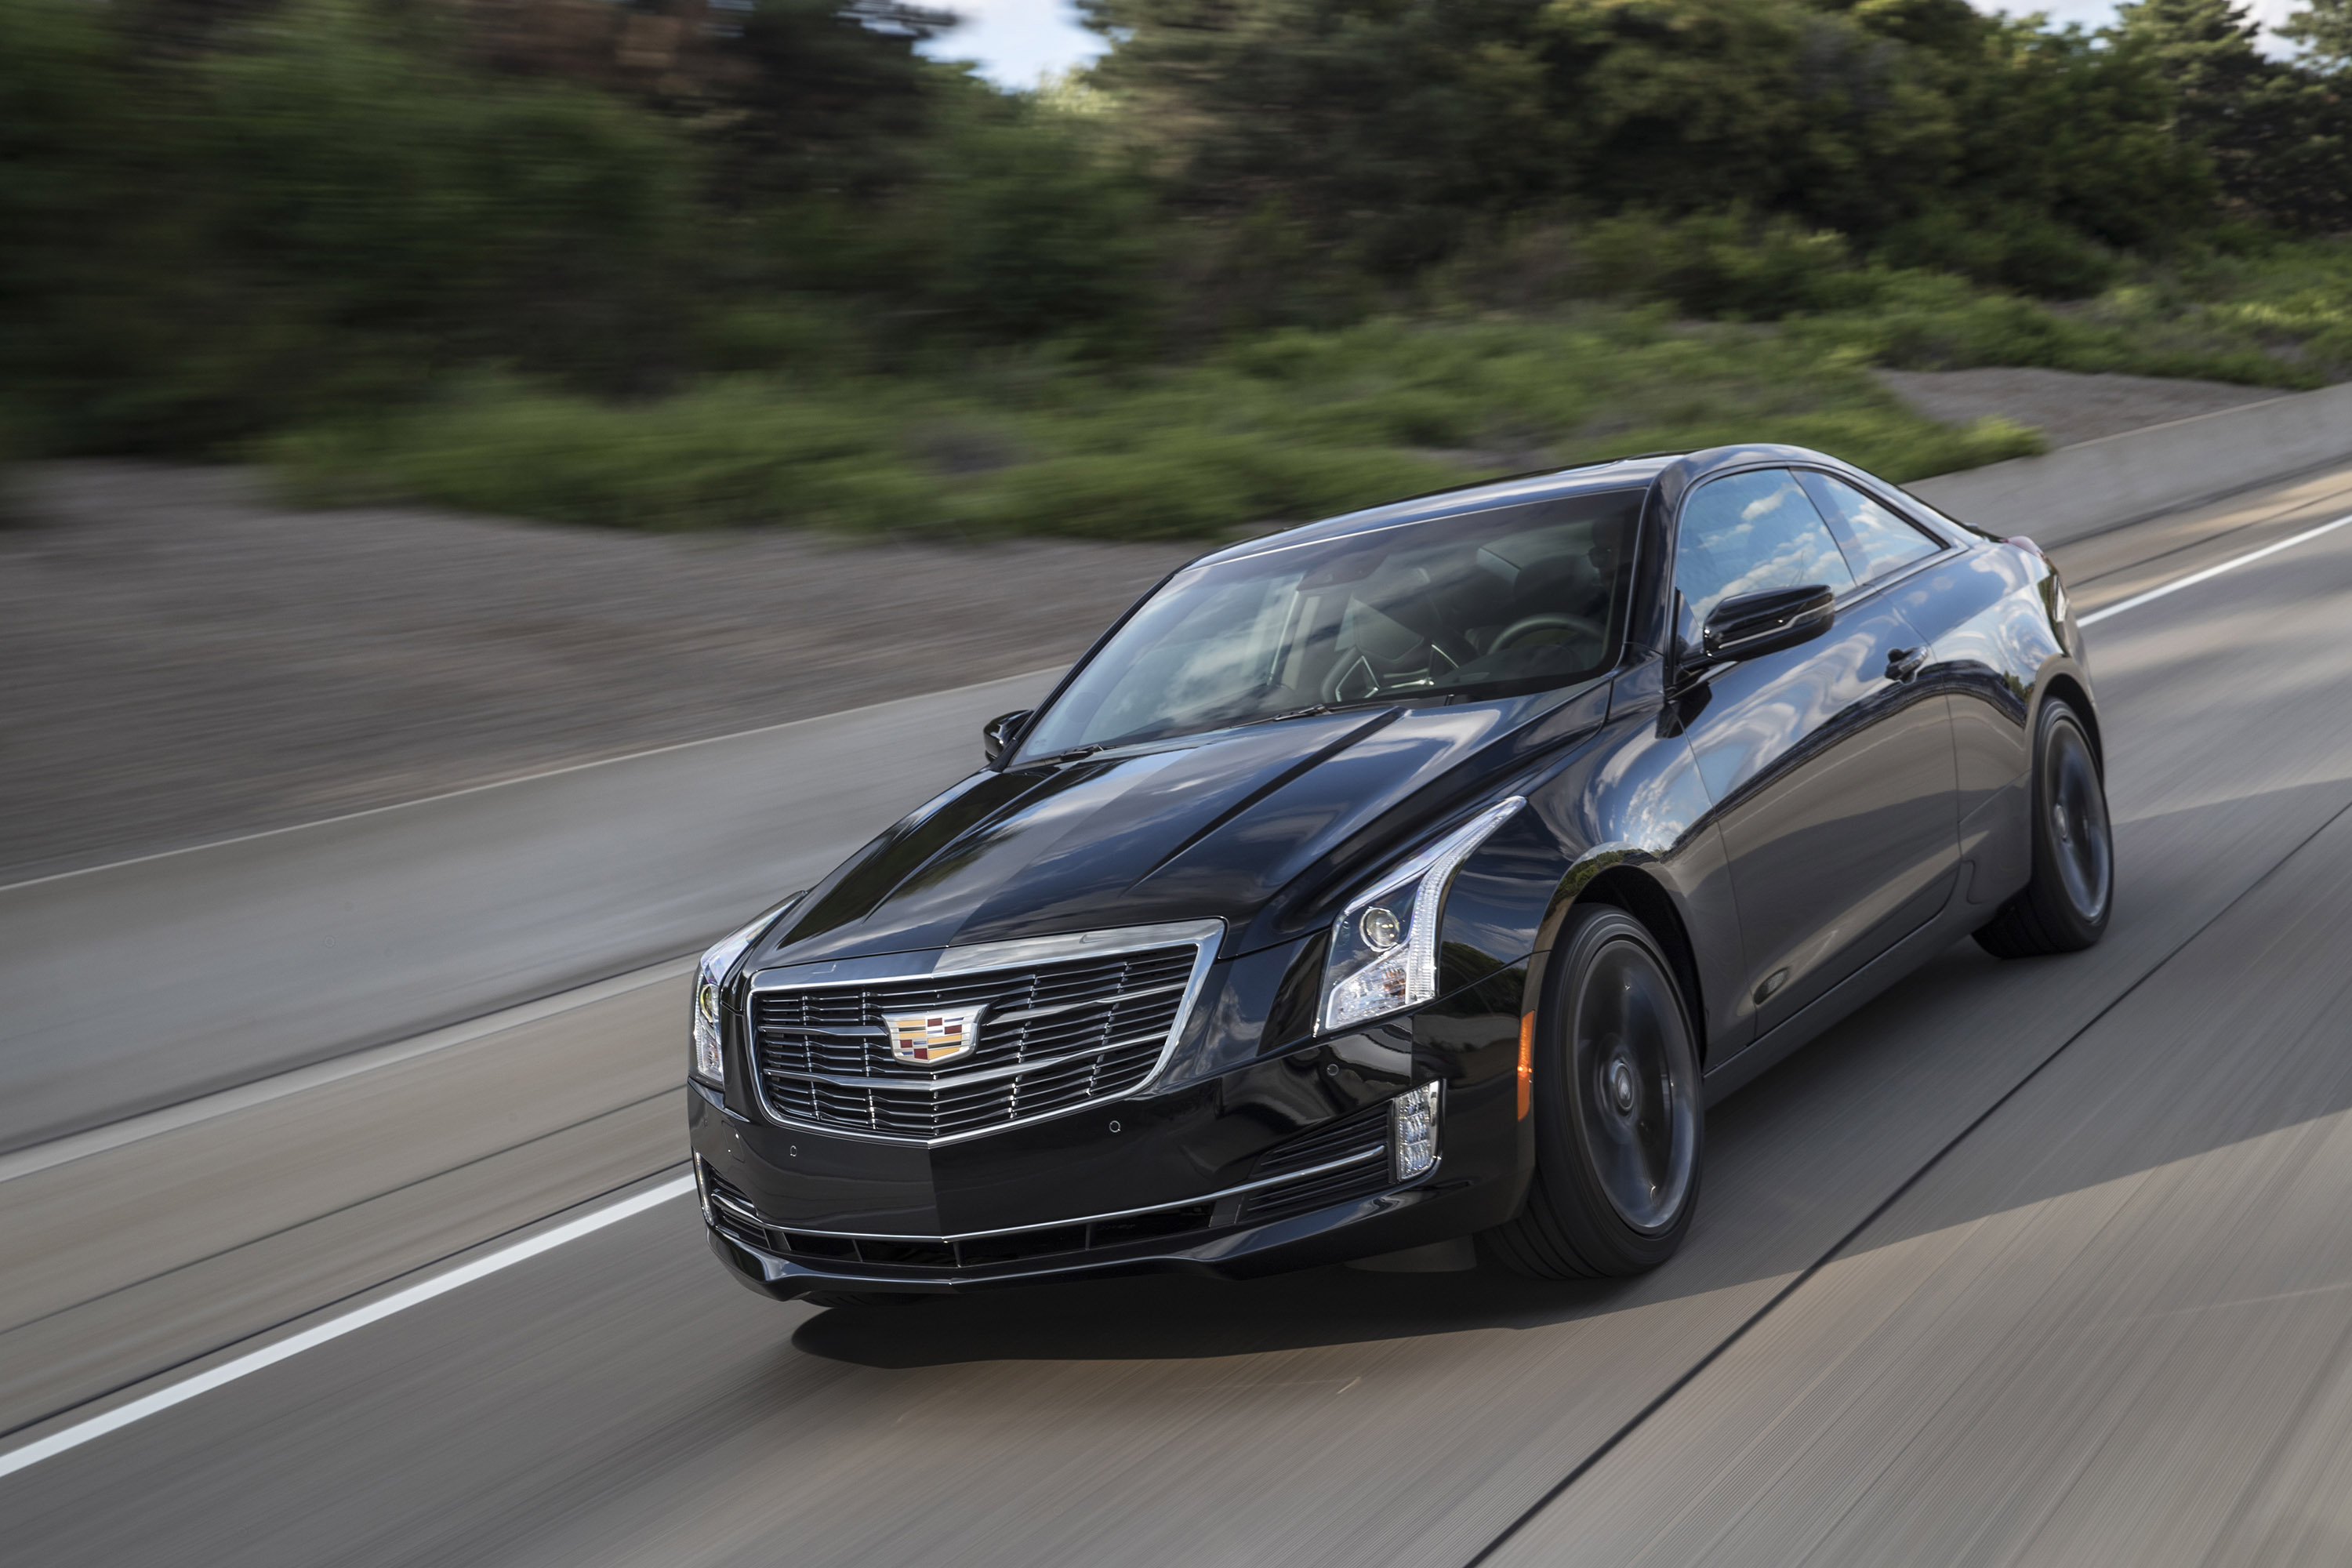 cadillac releases 2017 cts ats facelifts. Black Bedroom Furniture Sets. Home Design Ideas